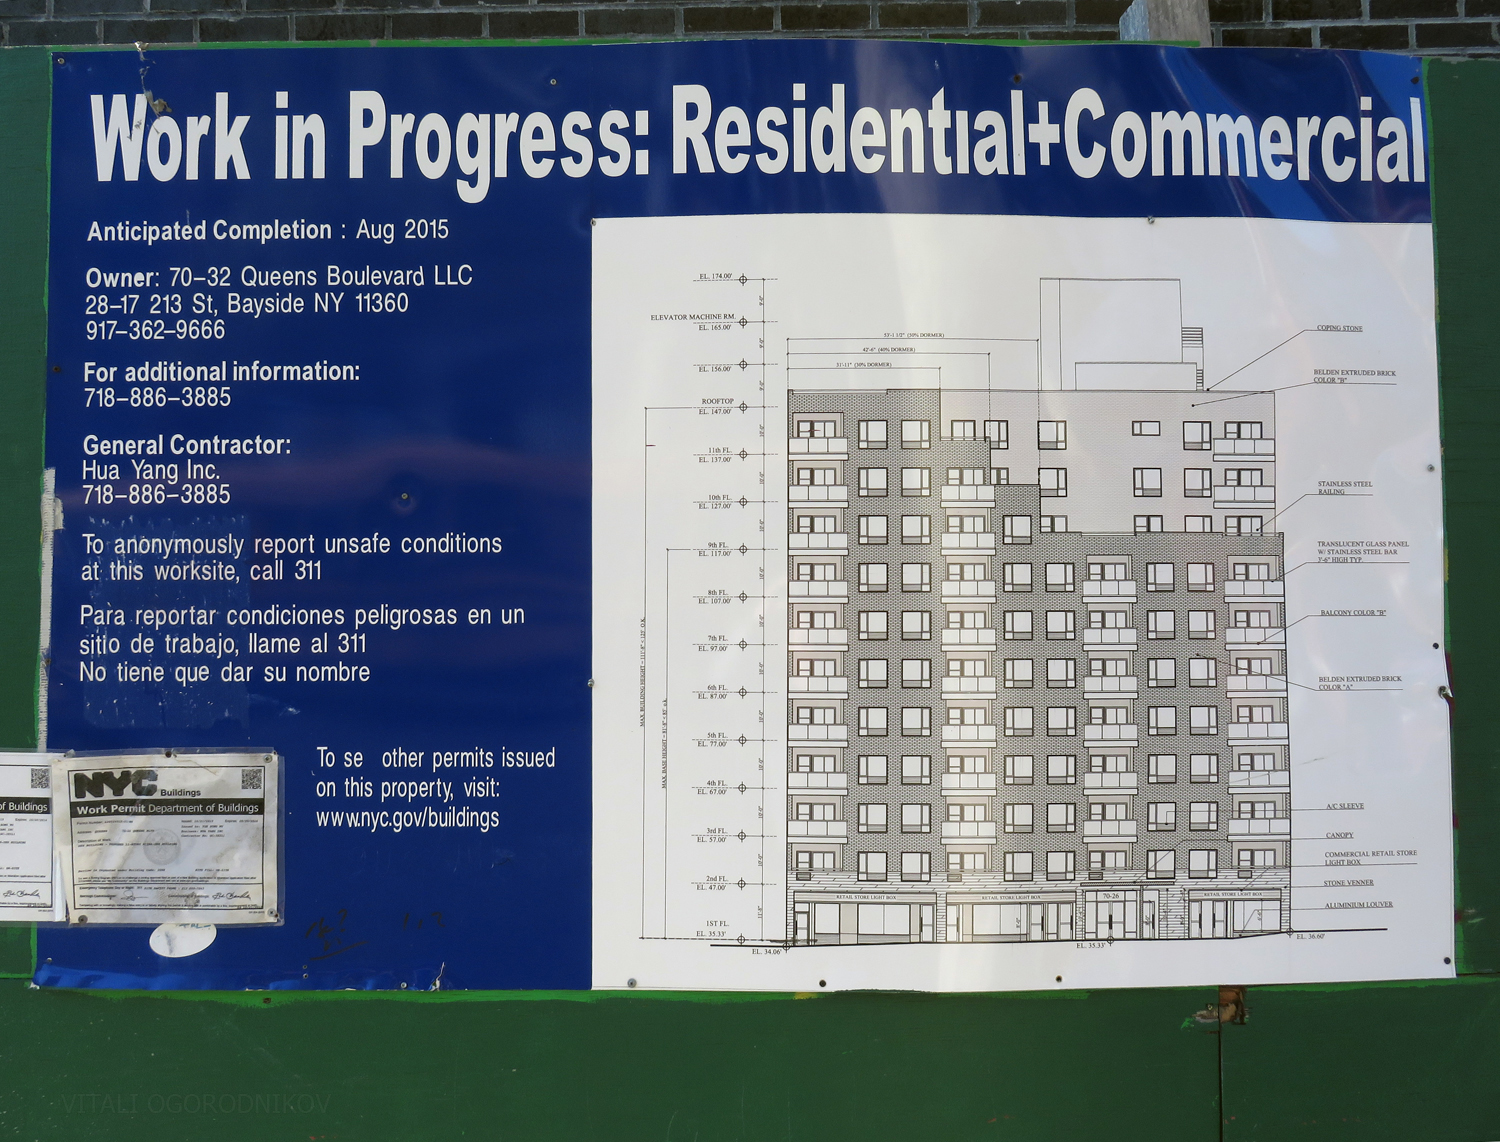 IMG_6229-70-32-Queens-Boulevard-board-small-wmark